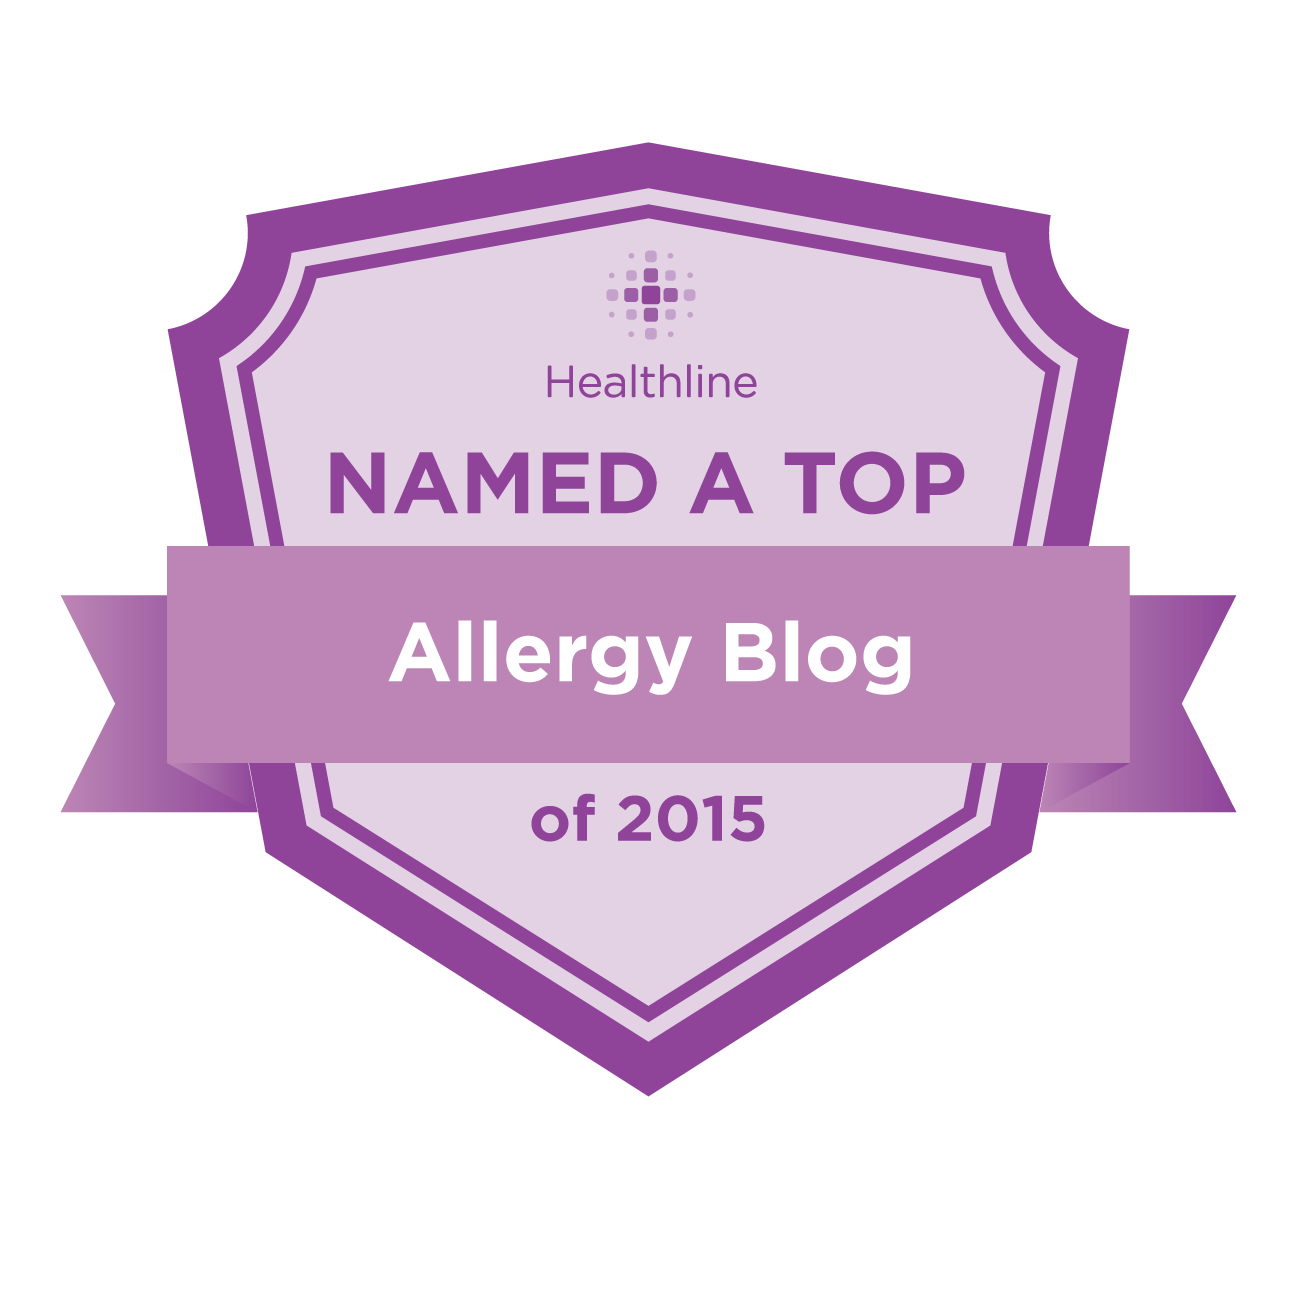 BEST ALLERGY BLOG 2015